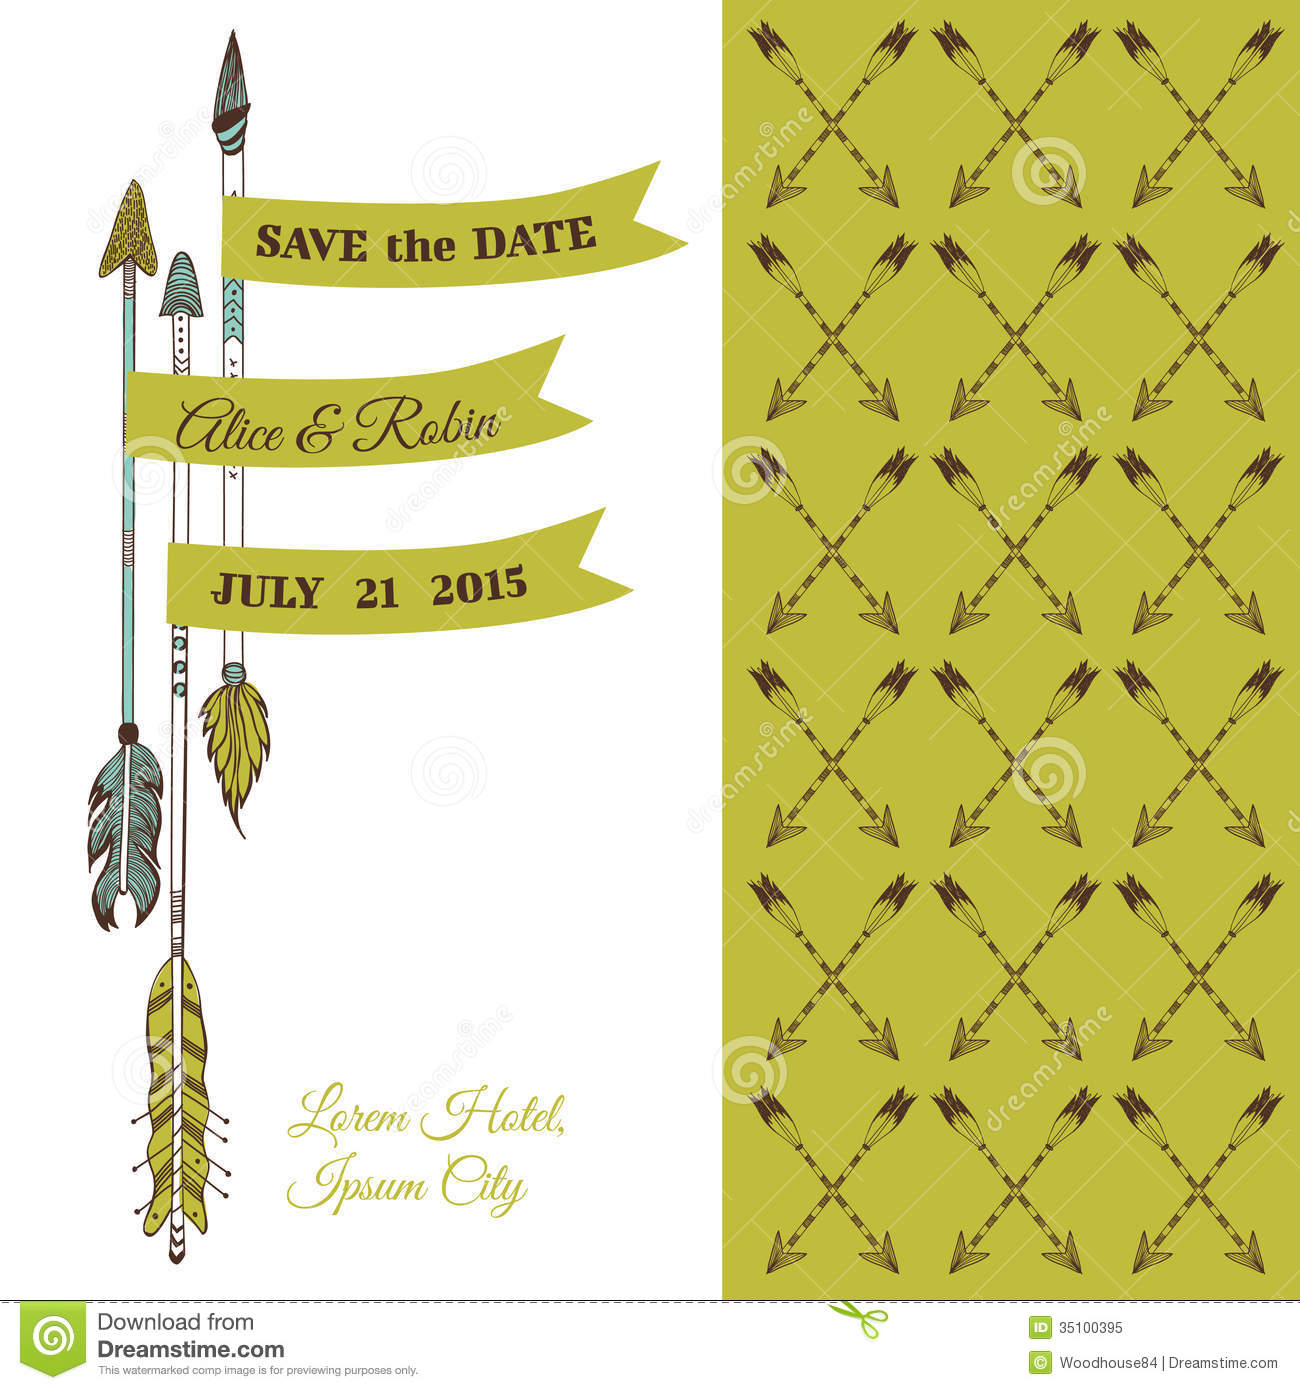 Wedding Invitation Card - Feather Arrows and Heart Theme - in .